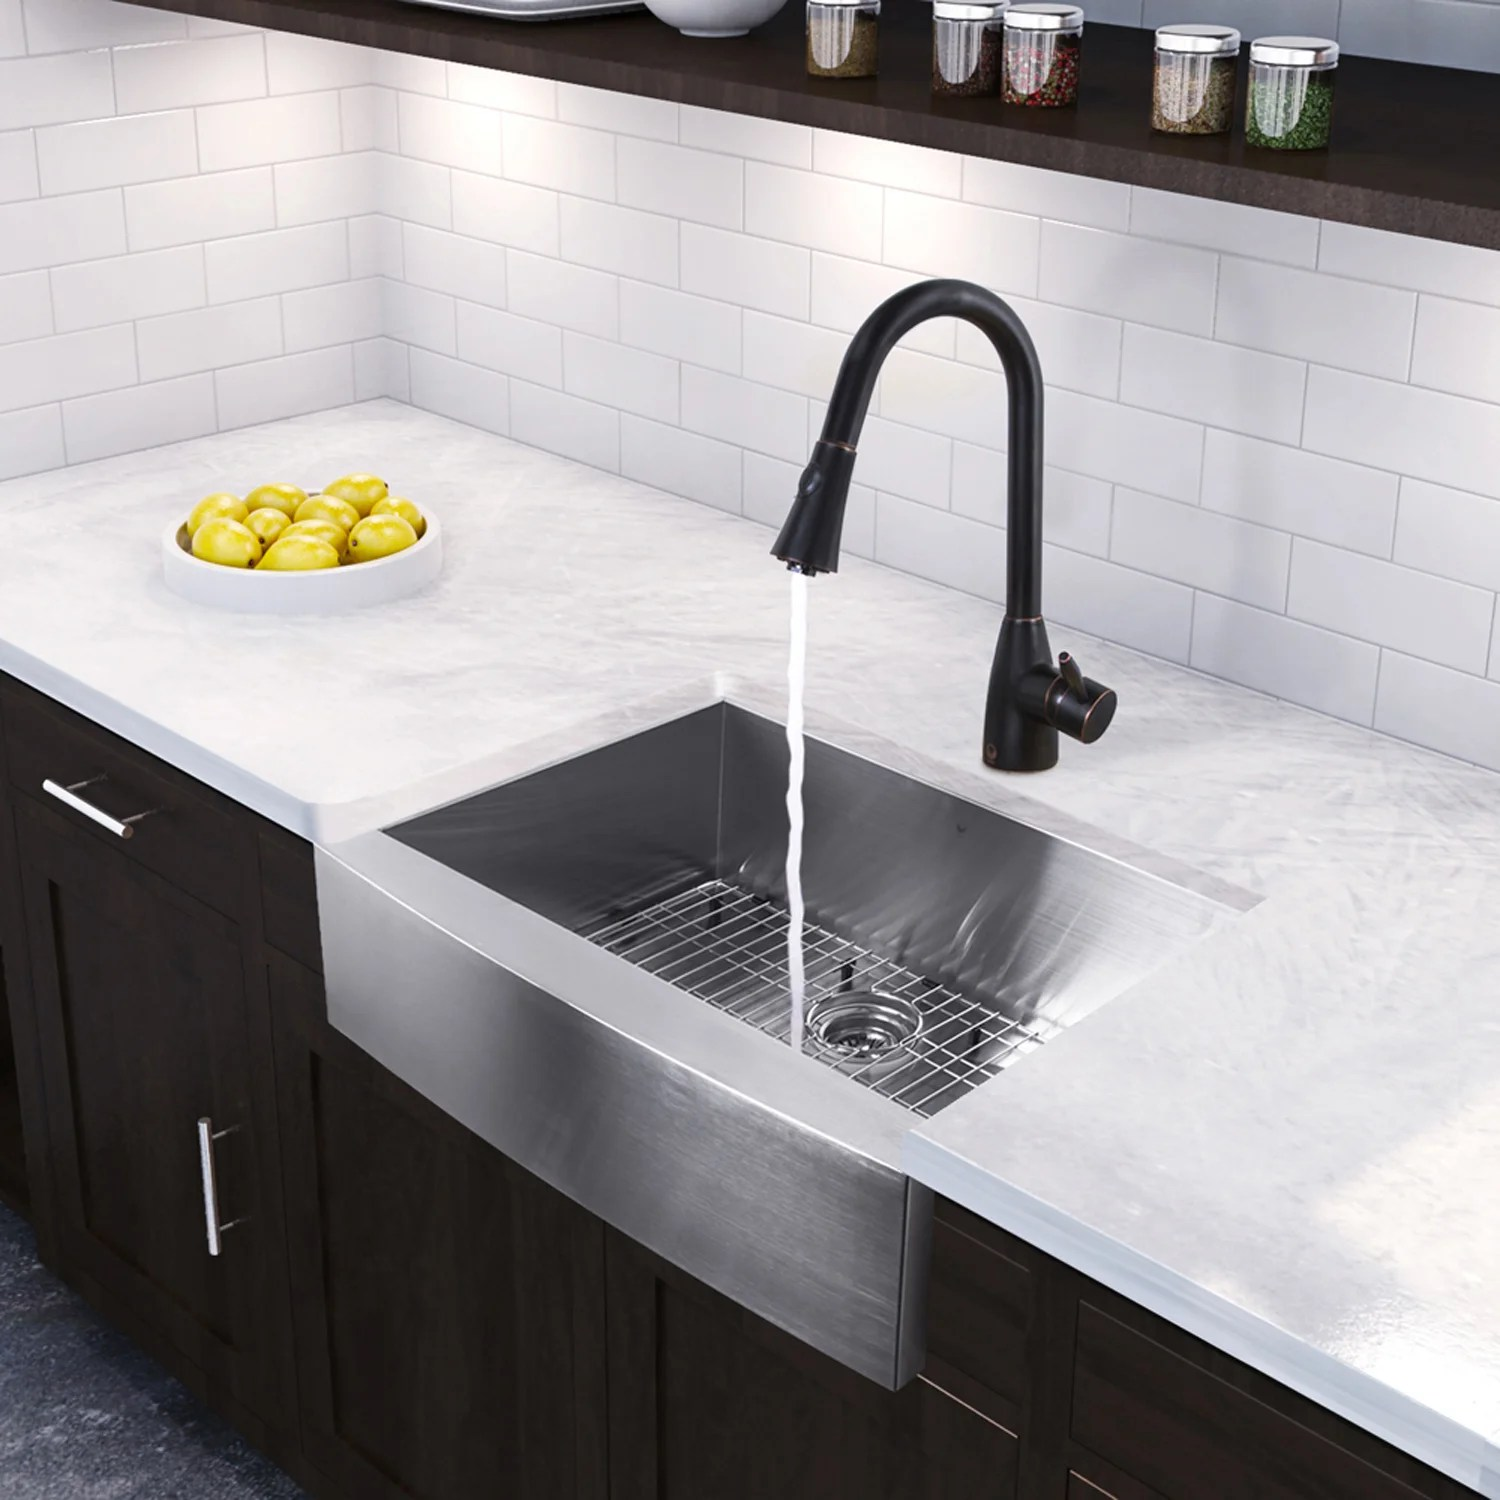 Vigo 30 inch Farmhouse Apron Single Bowl 16 Gauge Stainless Steel Kitchen Sink with Aylesbury Antique Rubbed Bronze Faucet Grid and Strainer VG15373